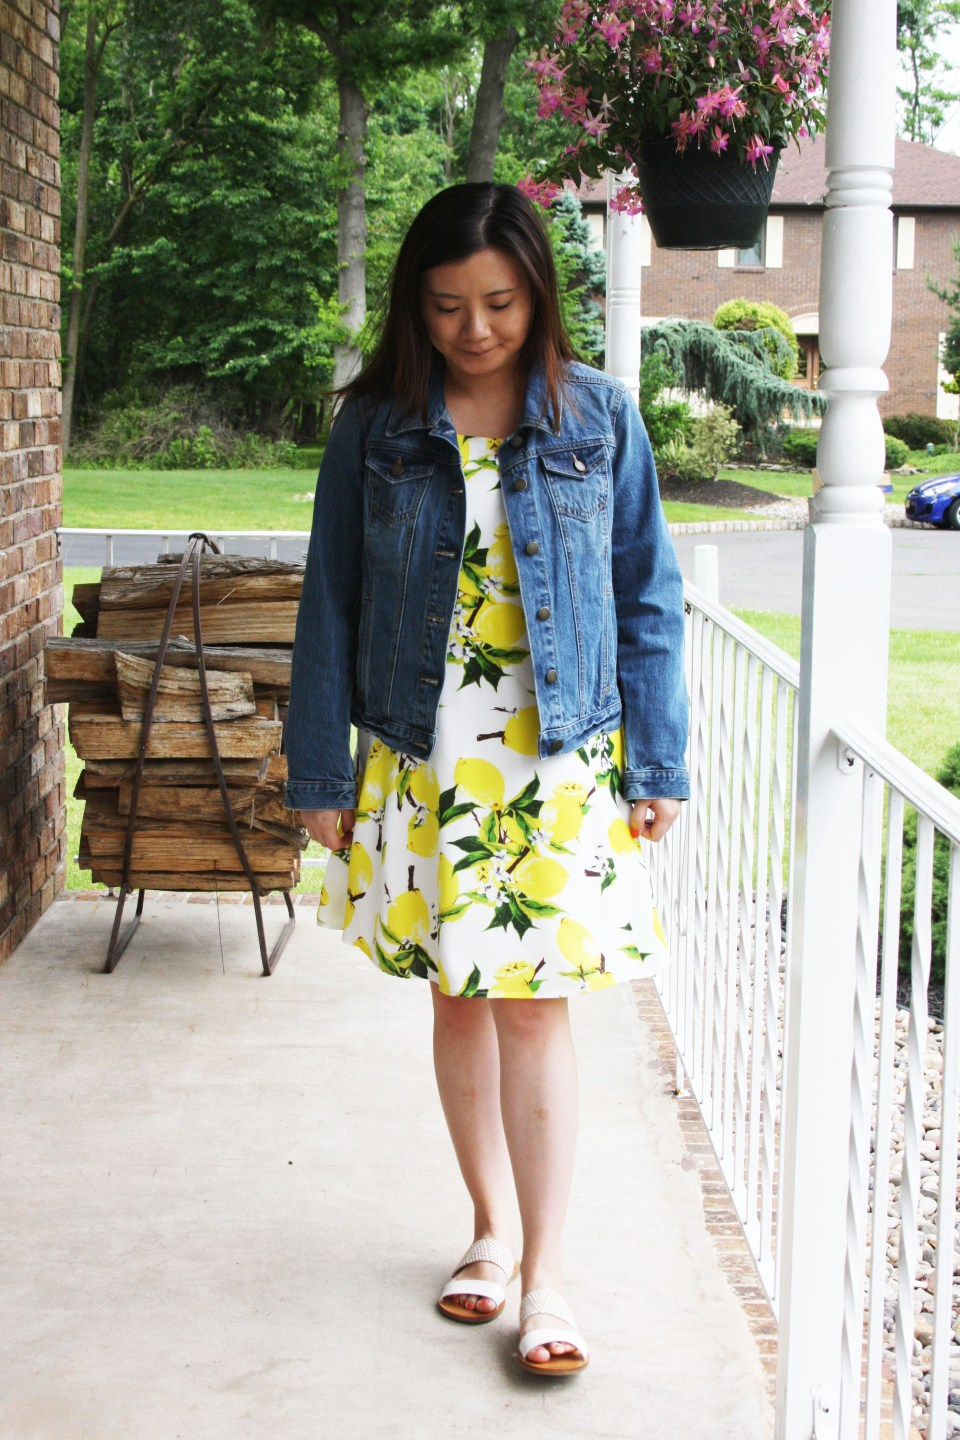 Lemon Print Dress + Denim Jacket 3